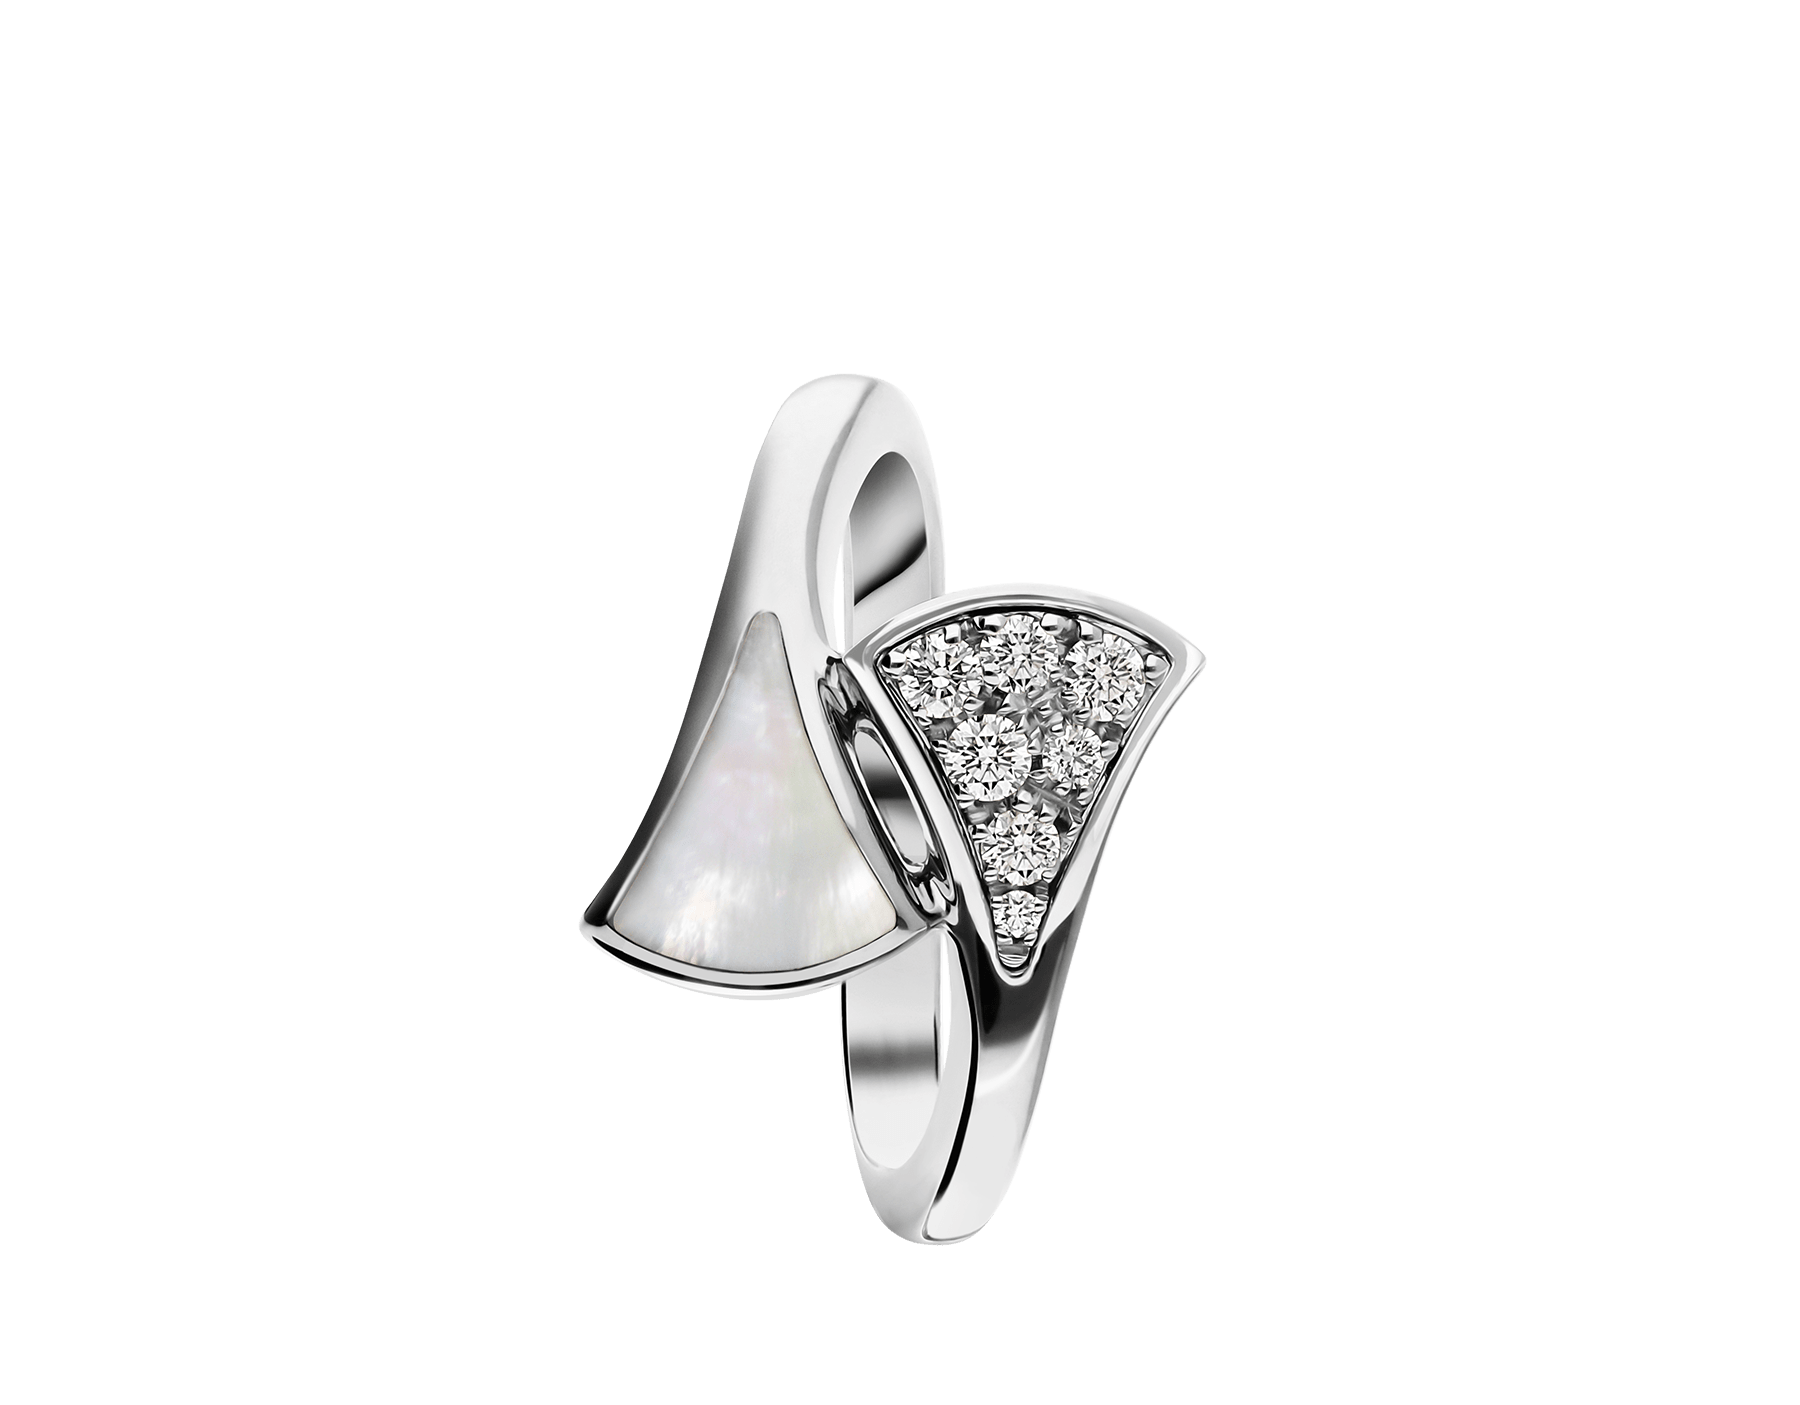 DIVAS' DREAM small contraire ring in 18 kt white gold, set with mother-of-pearl and pavé diamonds (0.10 ct). AN858004 image 2